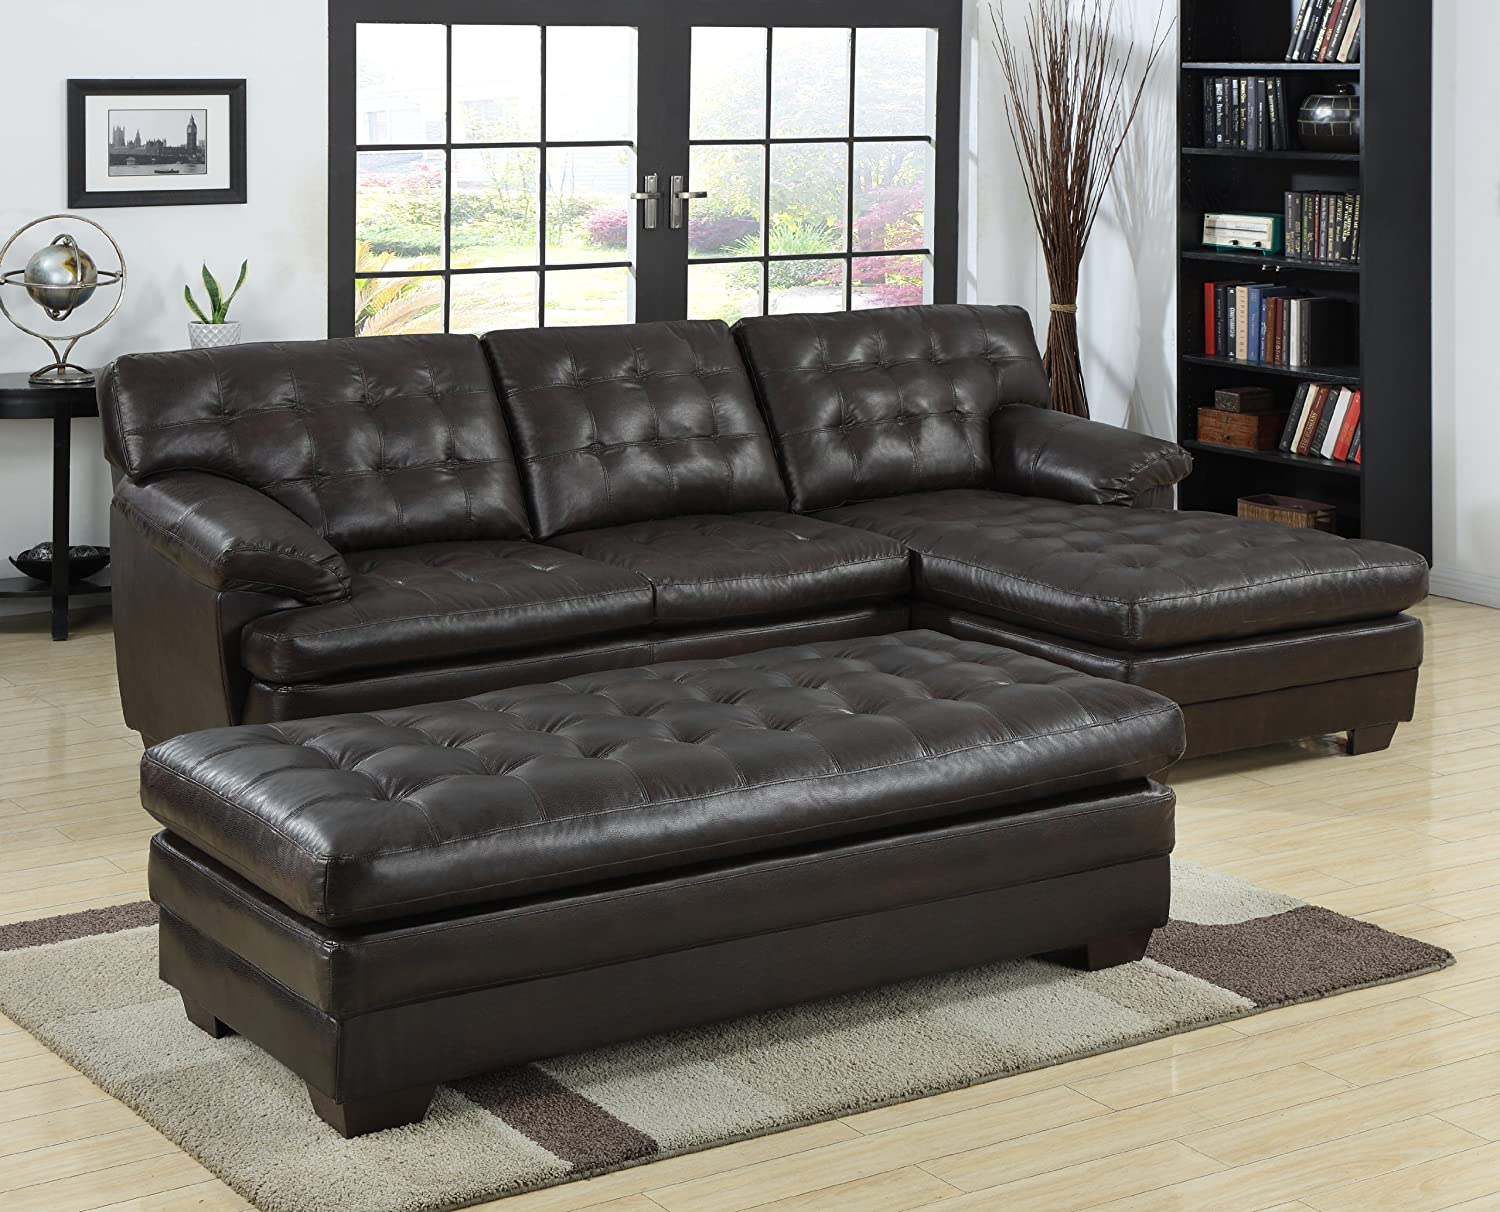 Merveilleux Amazon.com: Homelegance 9739 Channel Tufted 2 Piece Sectional Sofa Set,  Dark Brown With Bonded Leather: Kitchen U0026 Dining